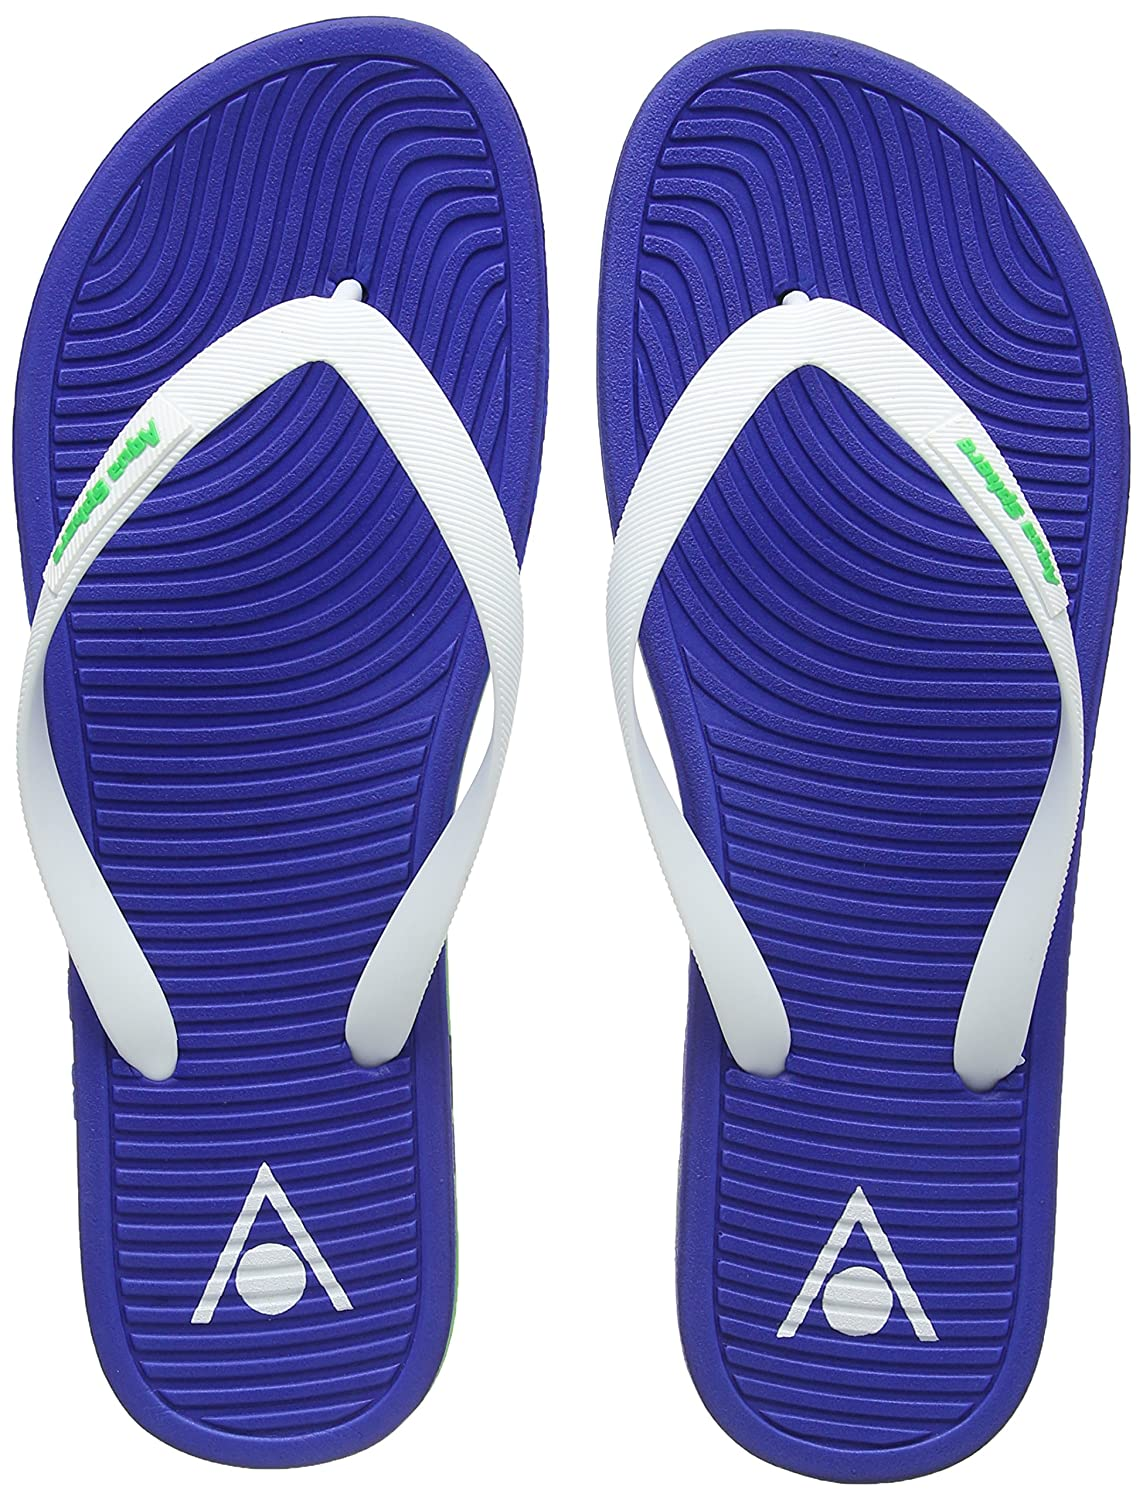 Aqua Sphere Hawaii Flip Flops